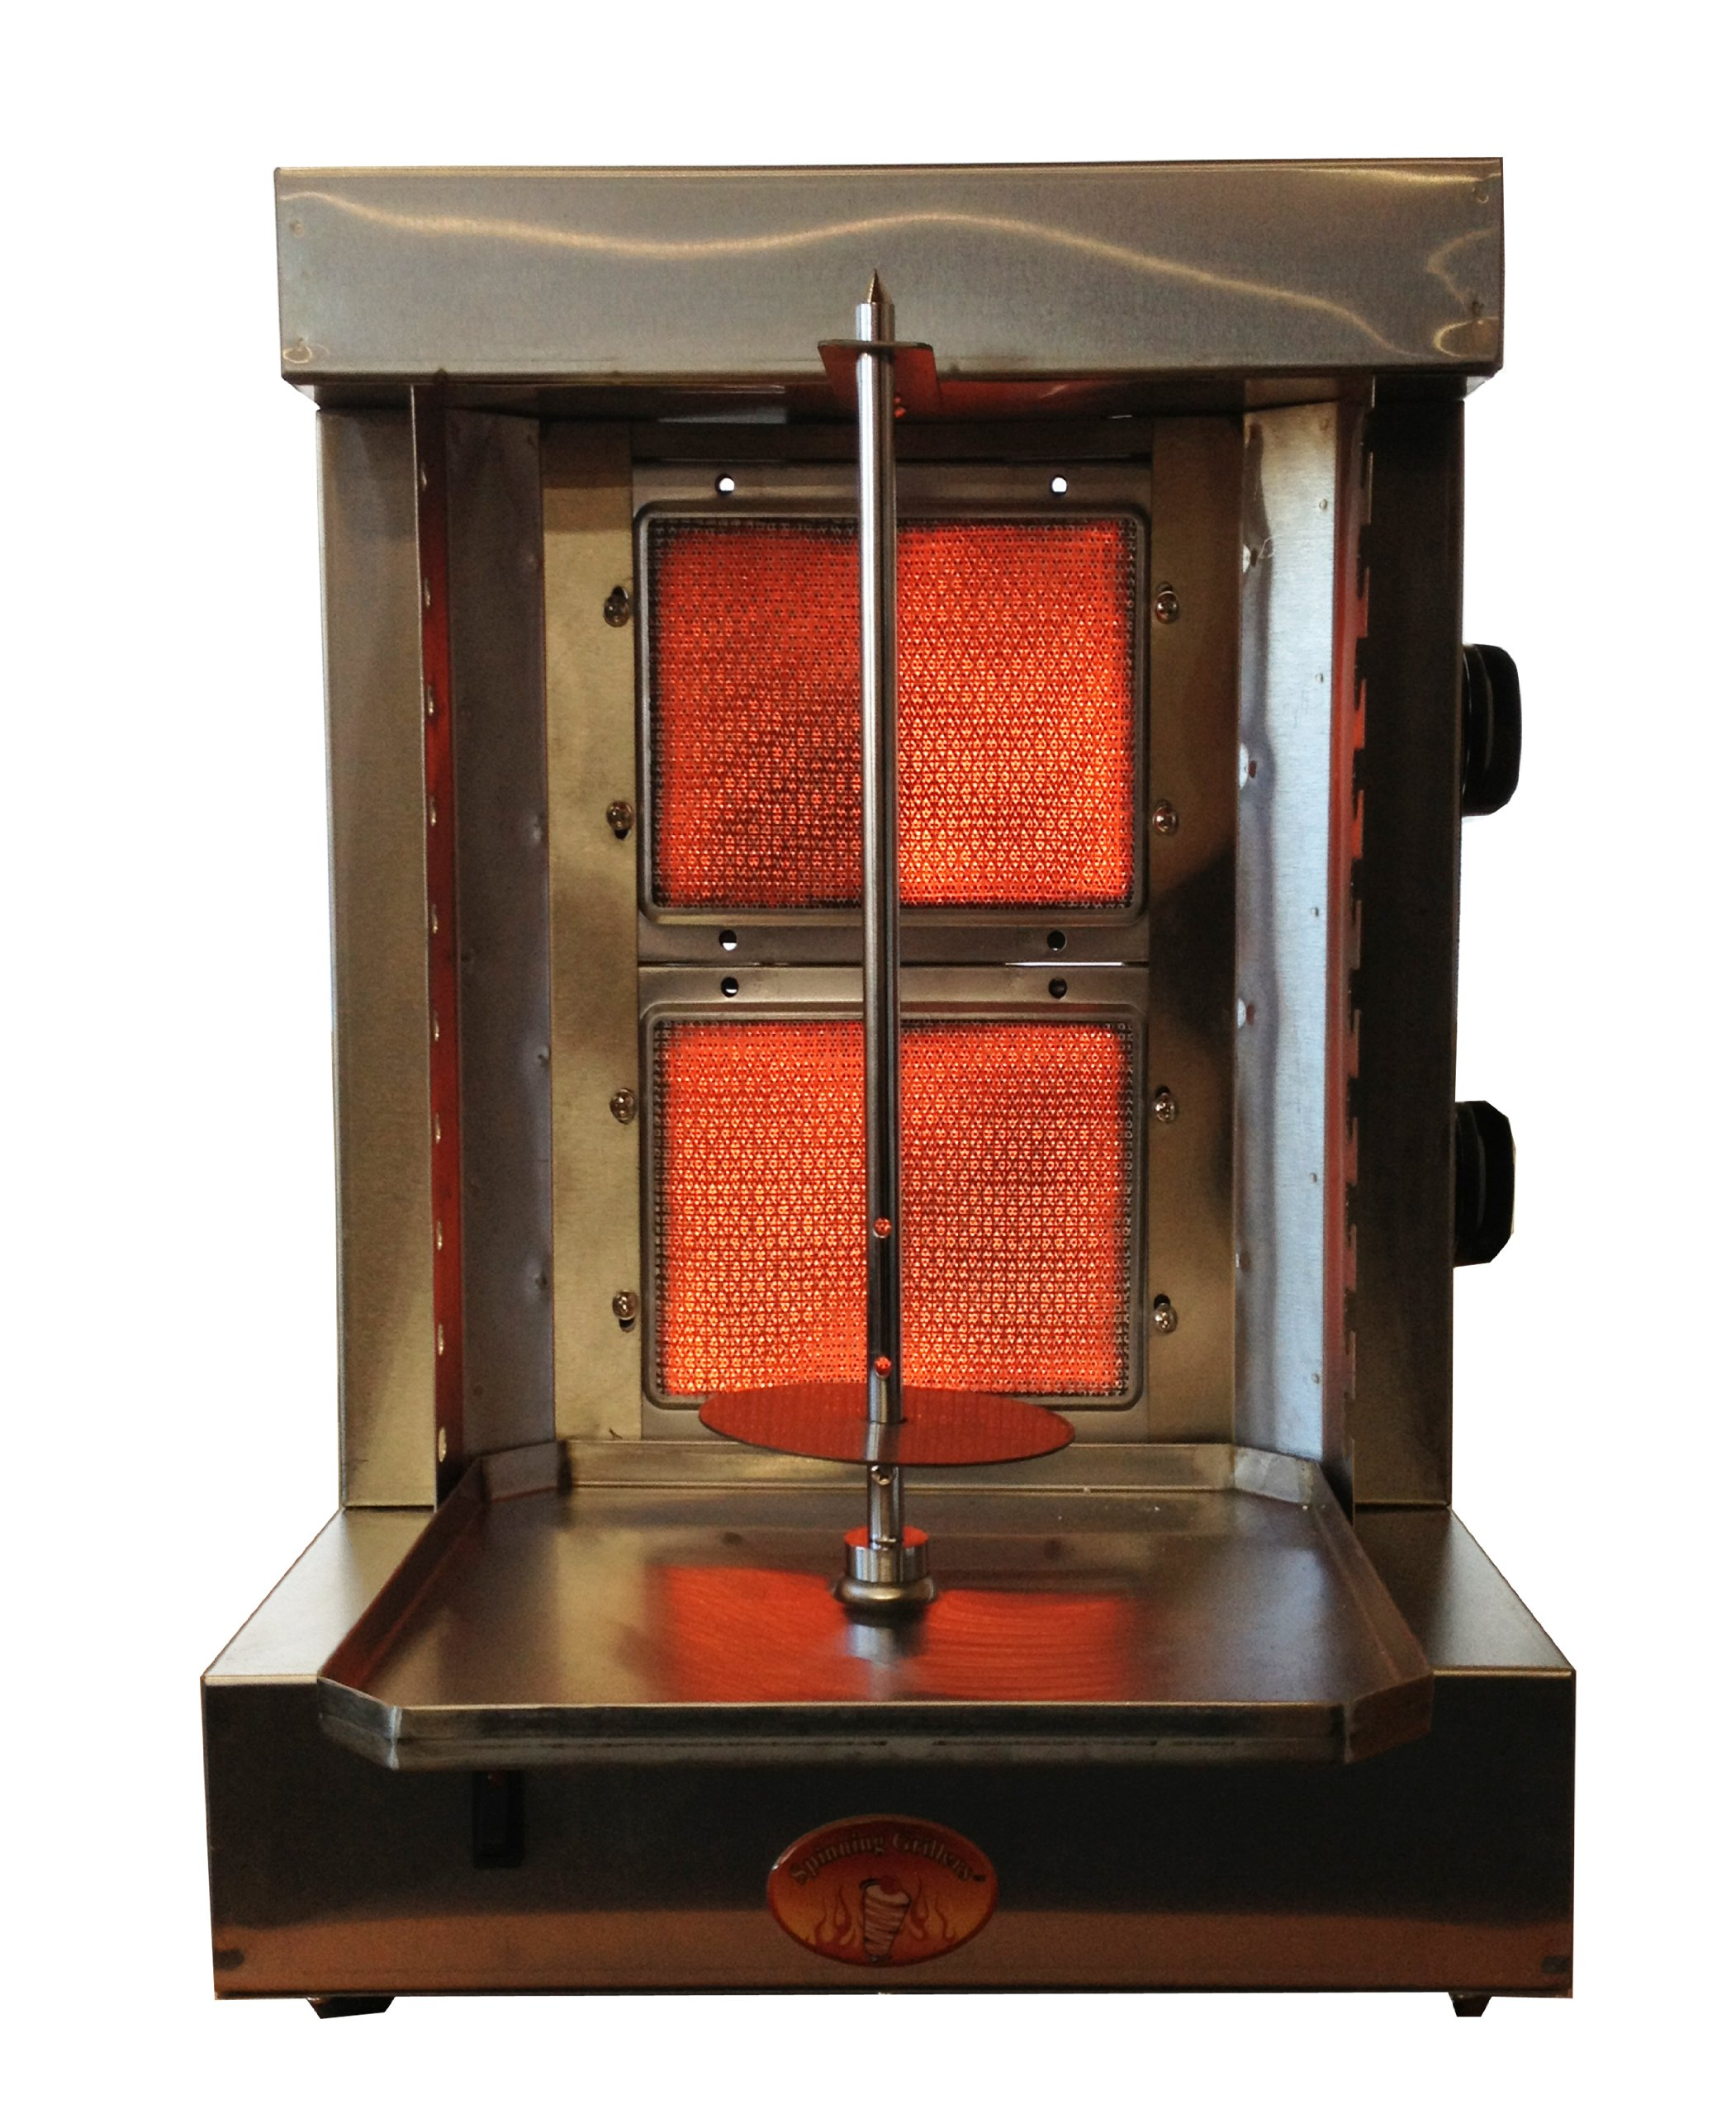 Iskender Kebab Grill by Spinning Grillers- Propane Gas- Non-Commercial- 15lbs Meat Capacity